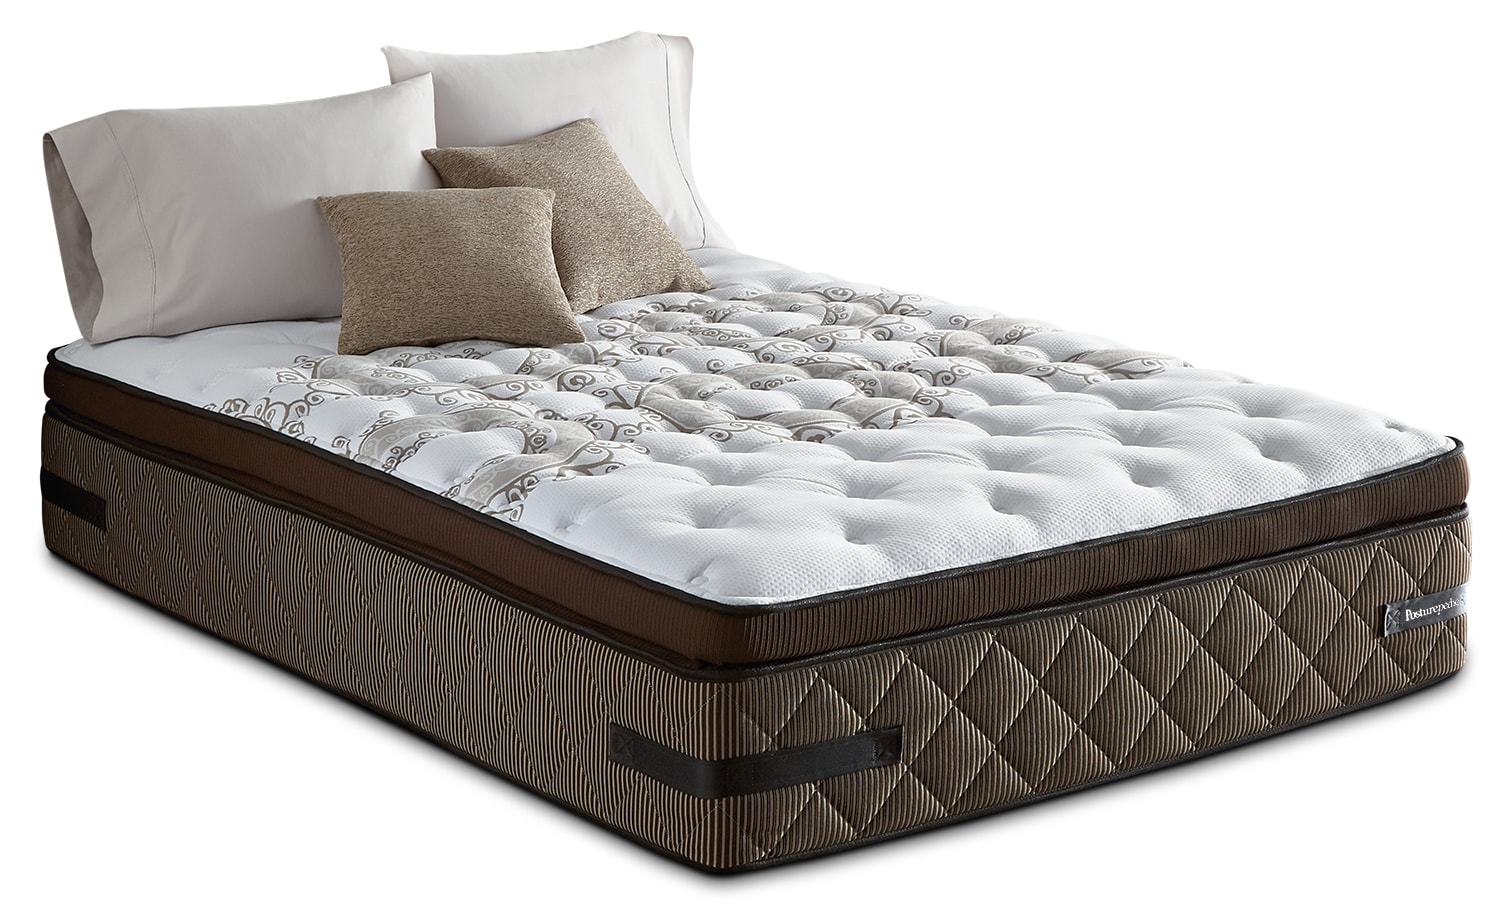 Mattresses and Bedding - Sealy Crown Jewel Sunsera Euro Pillow-Top Firm King Mattress